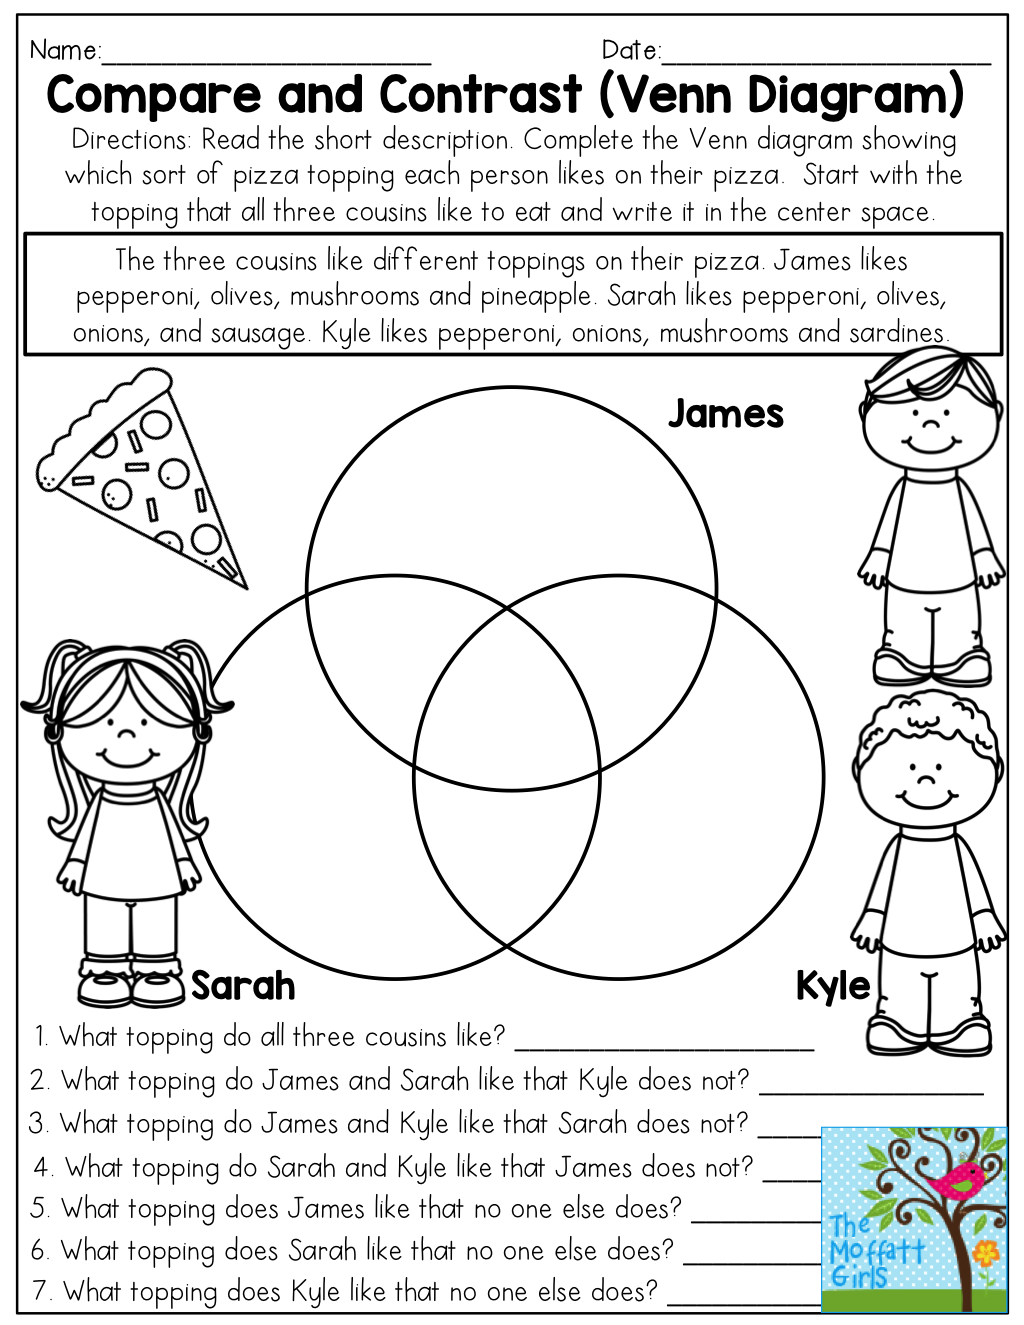 hight resolution of Compare and Contrast (Venn Diagram) 3 Things- Read the short description